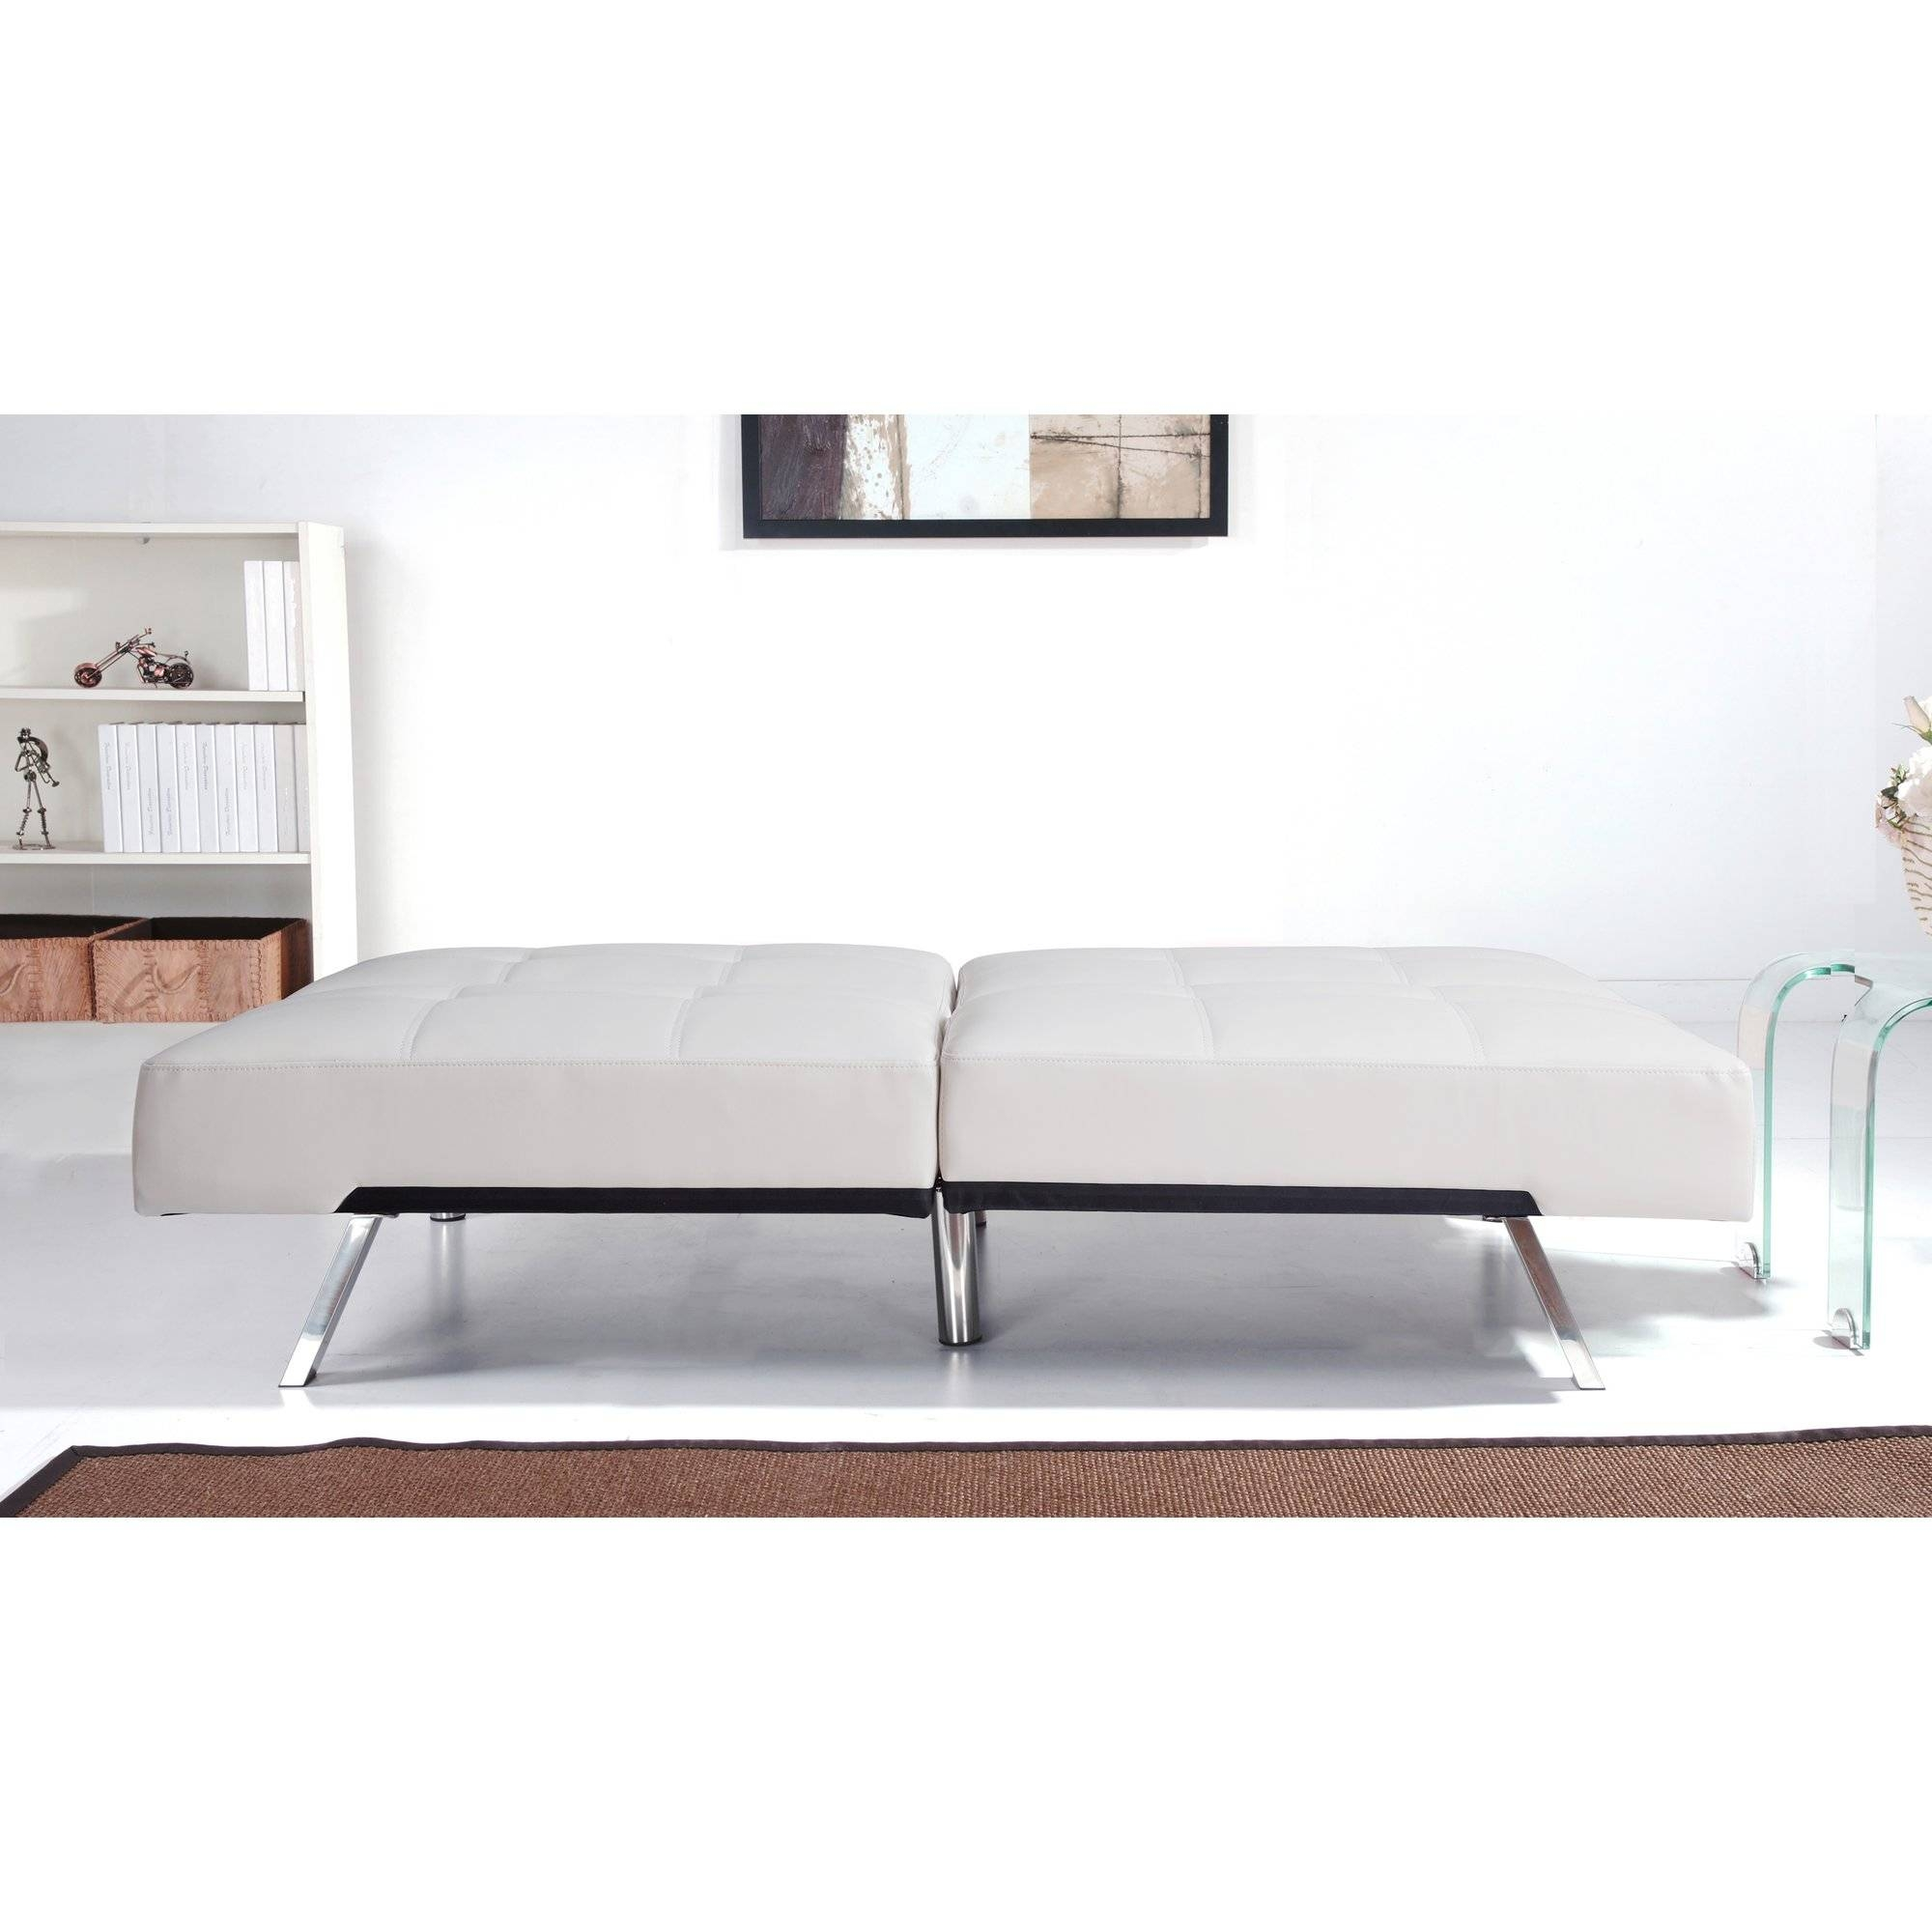 "Barton 70"" Sleeper Sofa & Reviews 